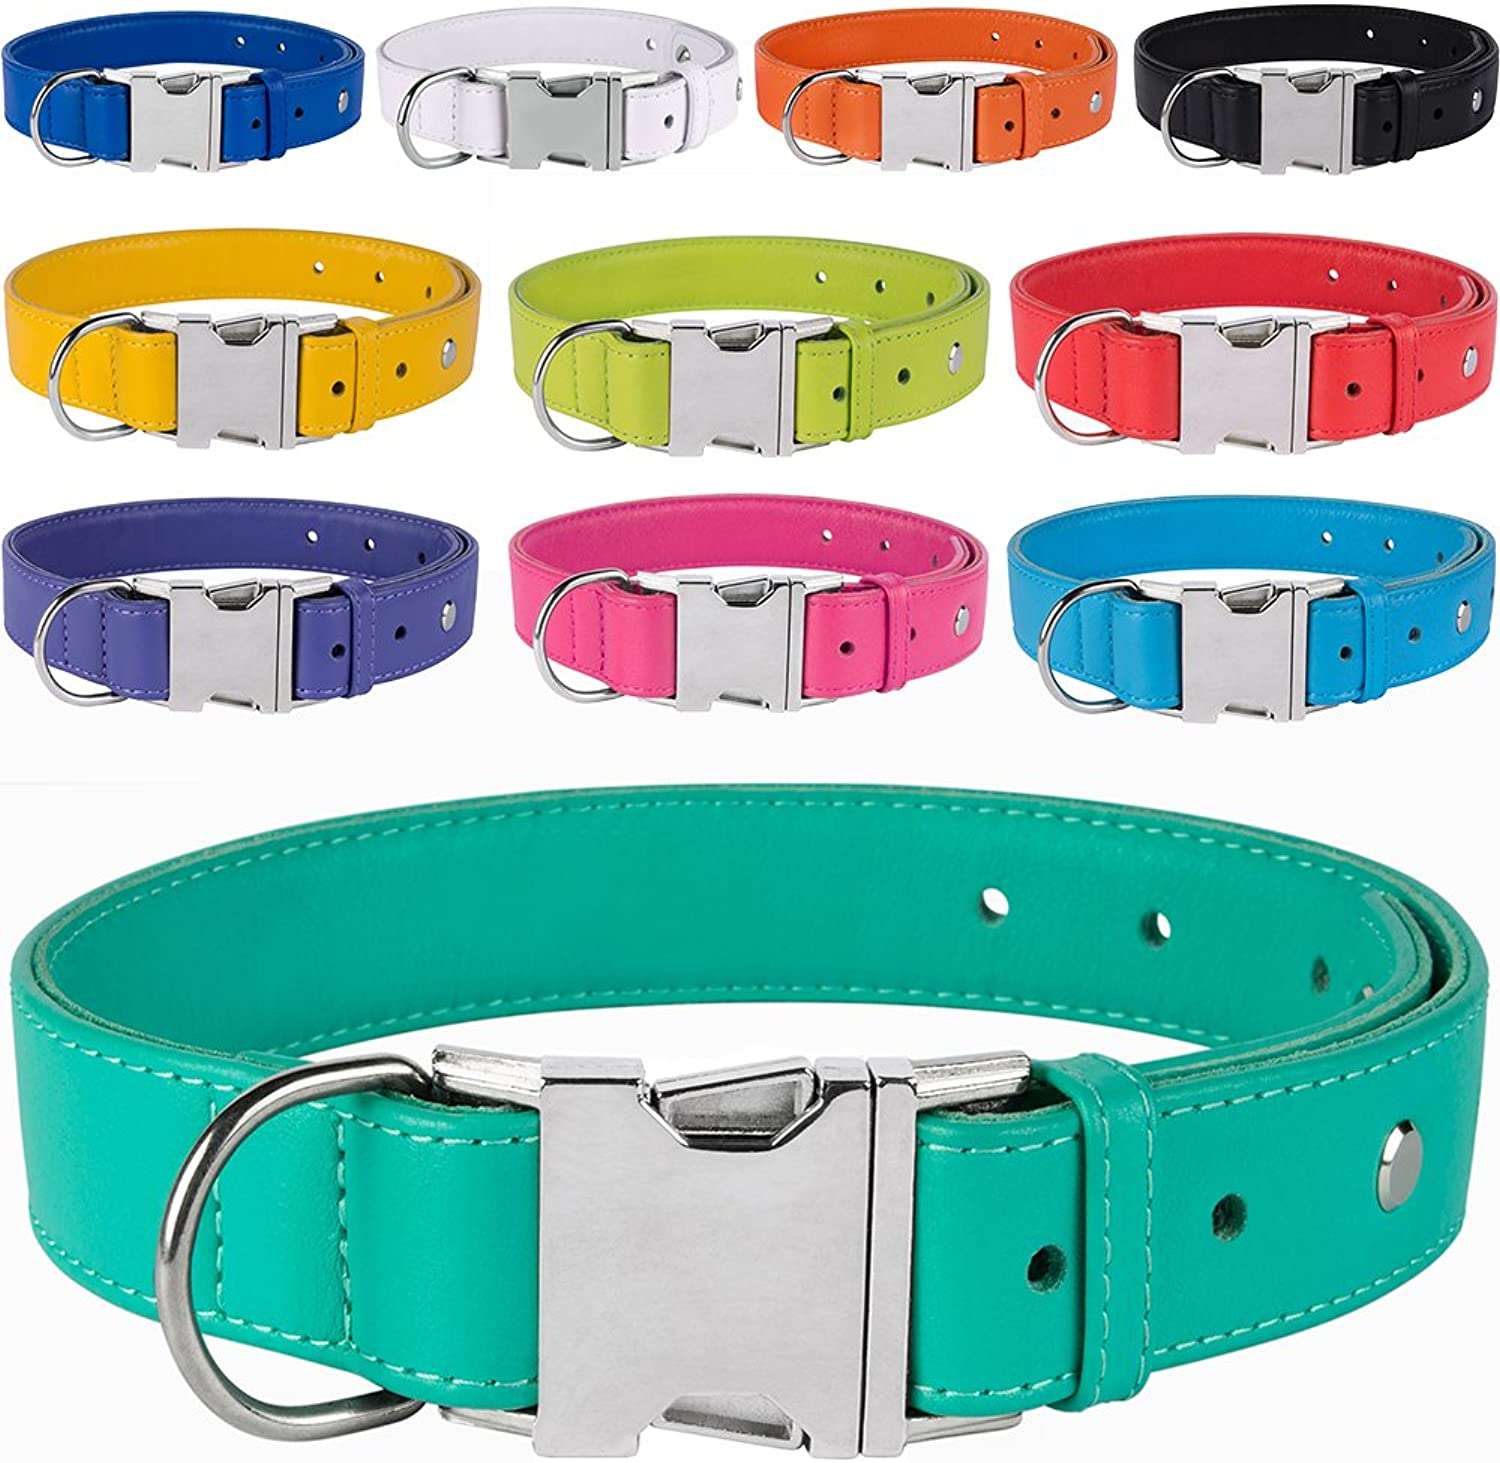 CollarDirect Leather Dog Collar, Metal Buckle Soft Genuine colorful Pet Collars for Dogs Puppy Small Medium Large Black Red Pink bluee Green orange (Neck Fit 10 11 , Navy bluee)